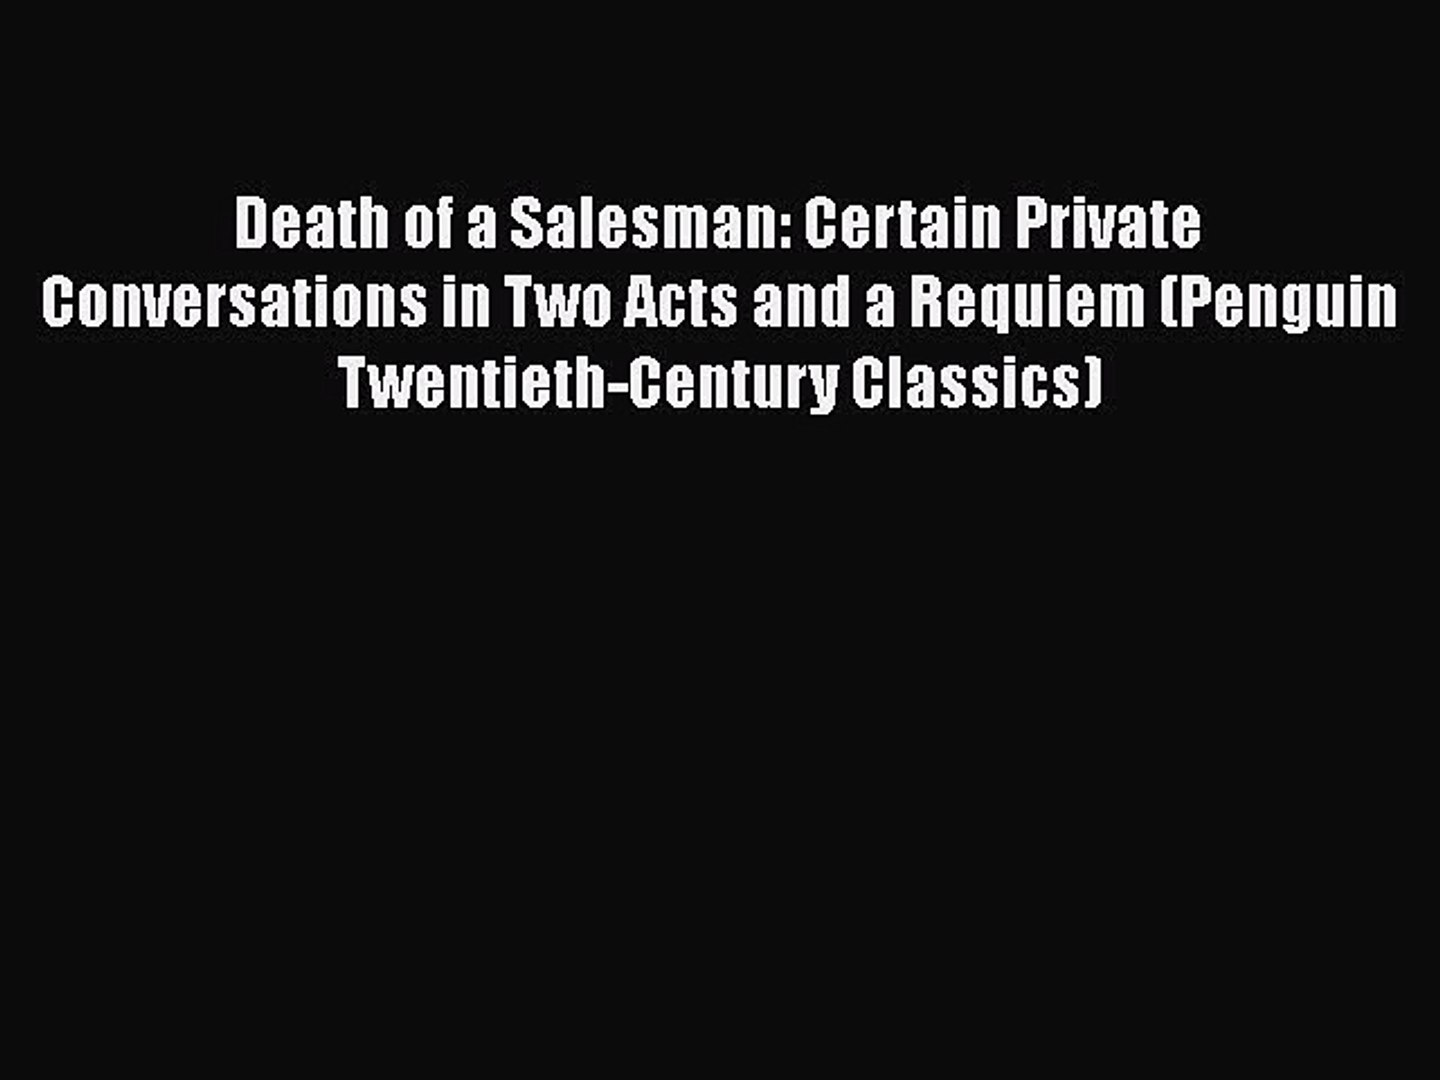 Death of a Salesman: Certain Private Conversations in Two Acts and a Requiem (Penguin Twentieth-Cent